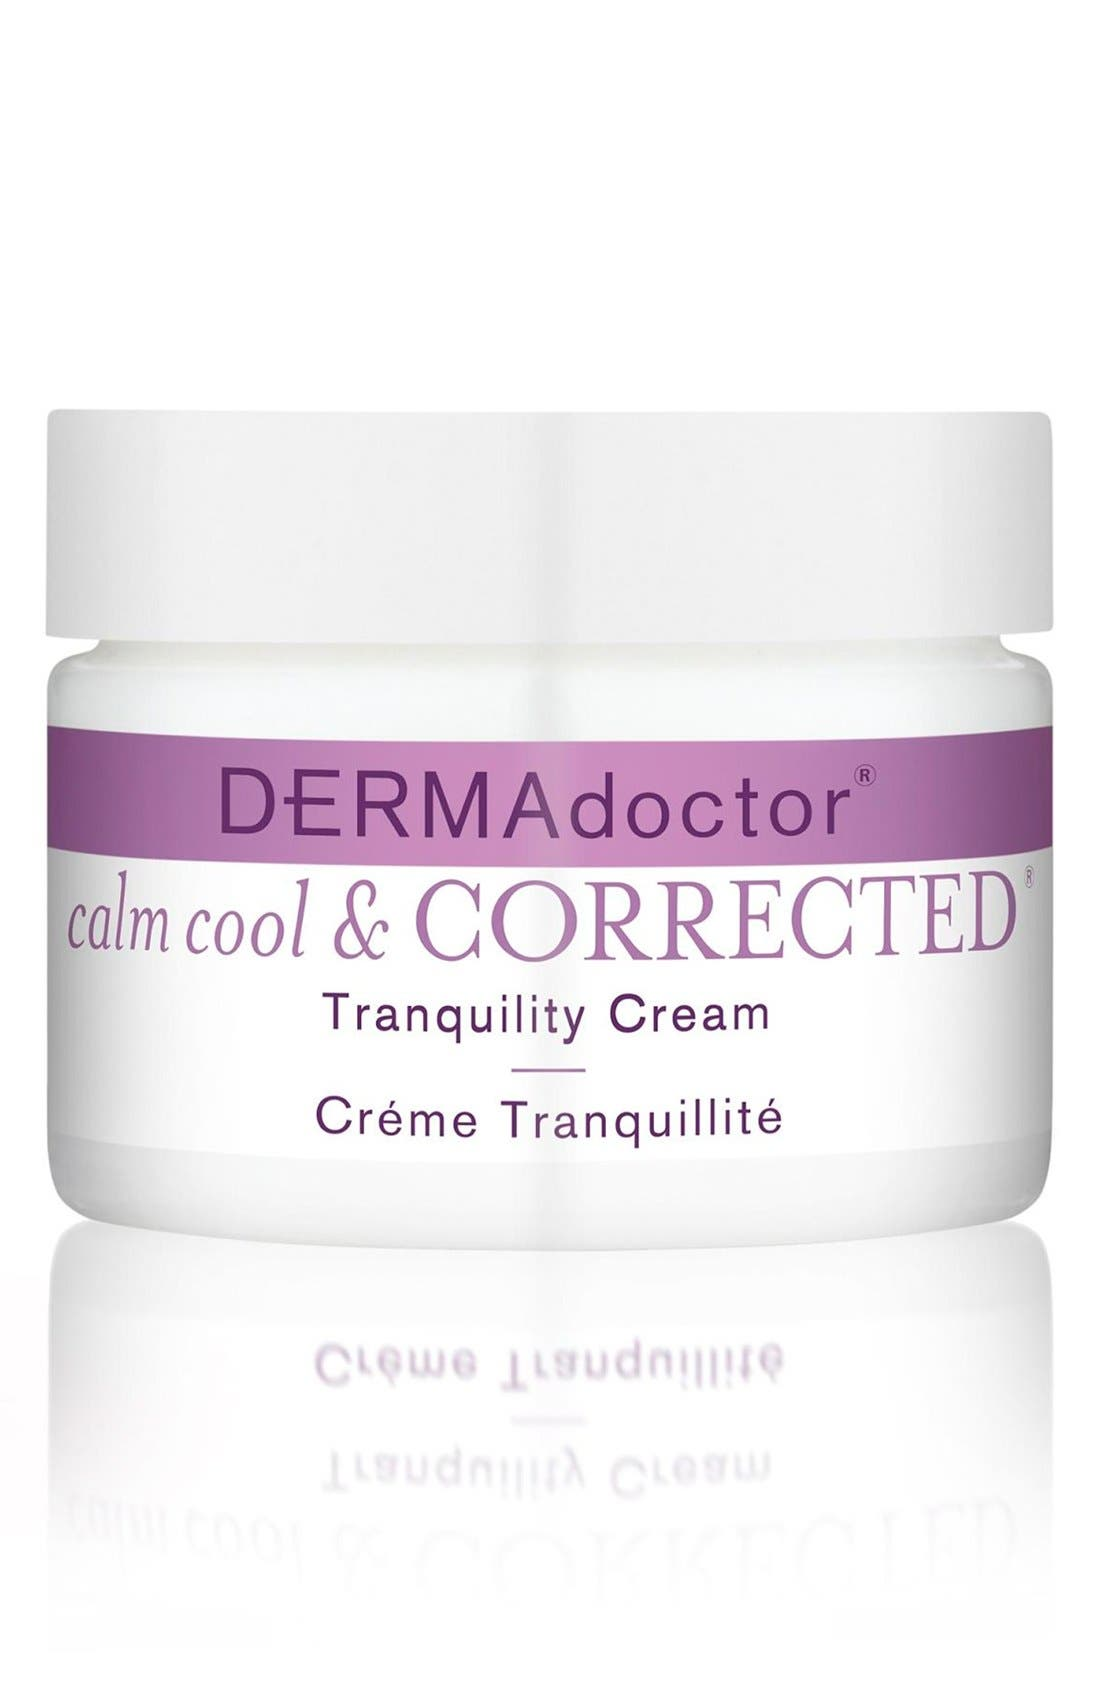 'calm cool & CORRECTED<sup>®</sup>' Anti-Redness Tranquility Cream,                             Main thumbnail 1, color,                             NO COLOR